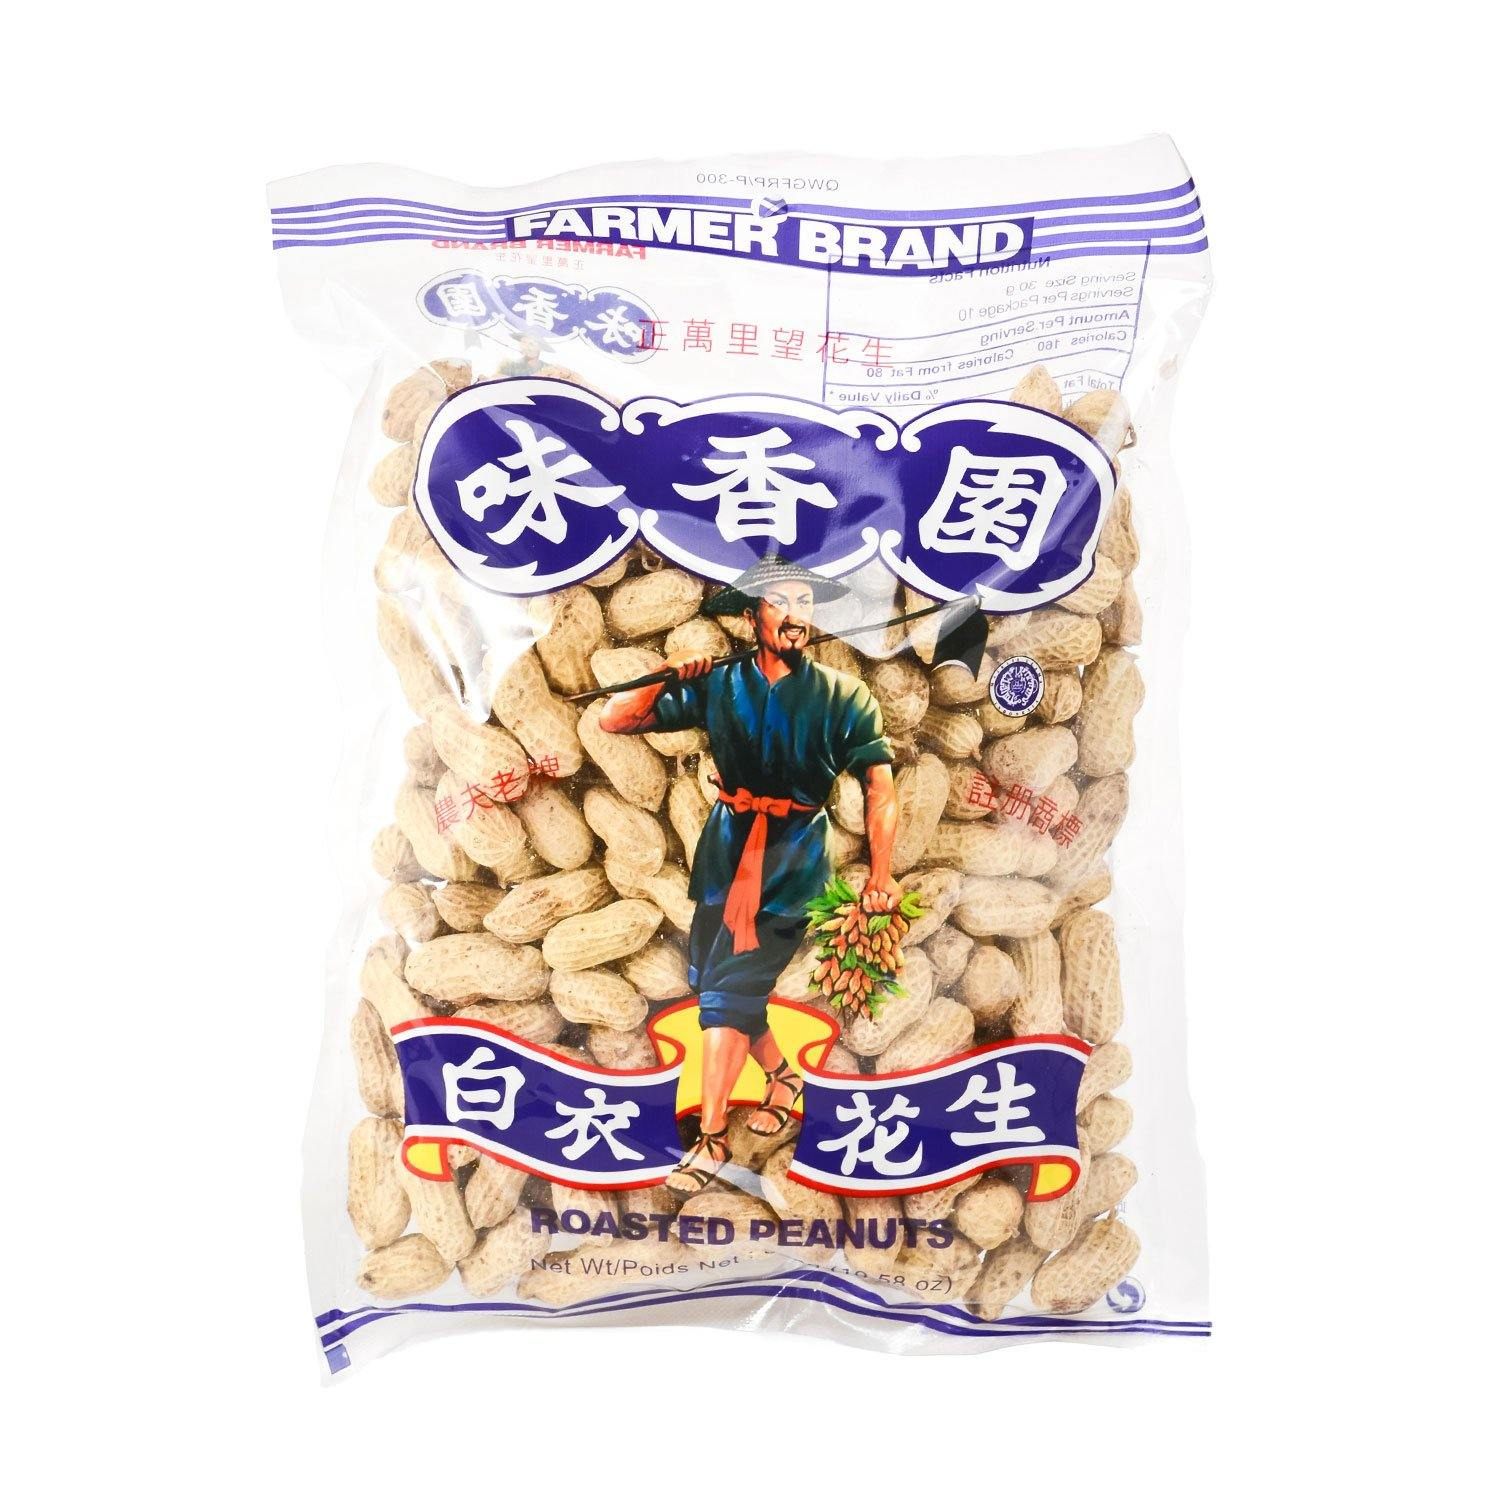 Farmer Brand Roasted Peanuts 10.58 Oz (300 g) - 味香园白衣花生